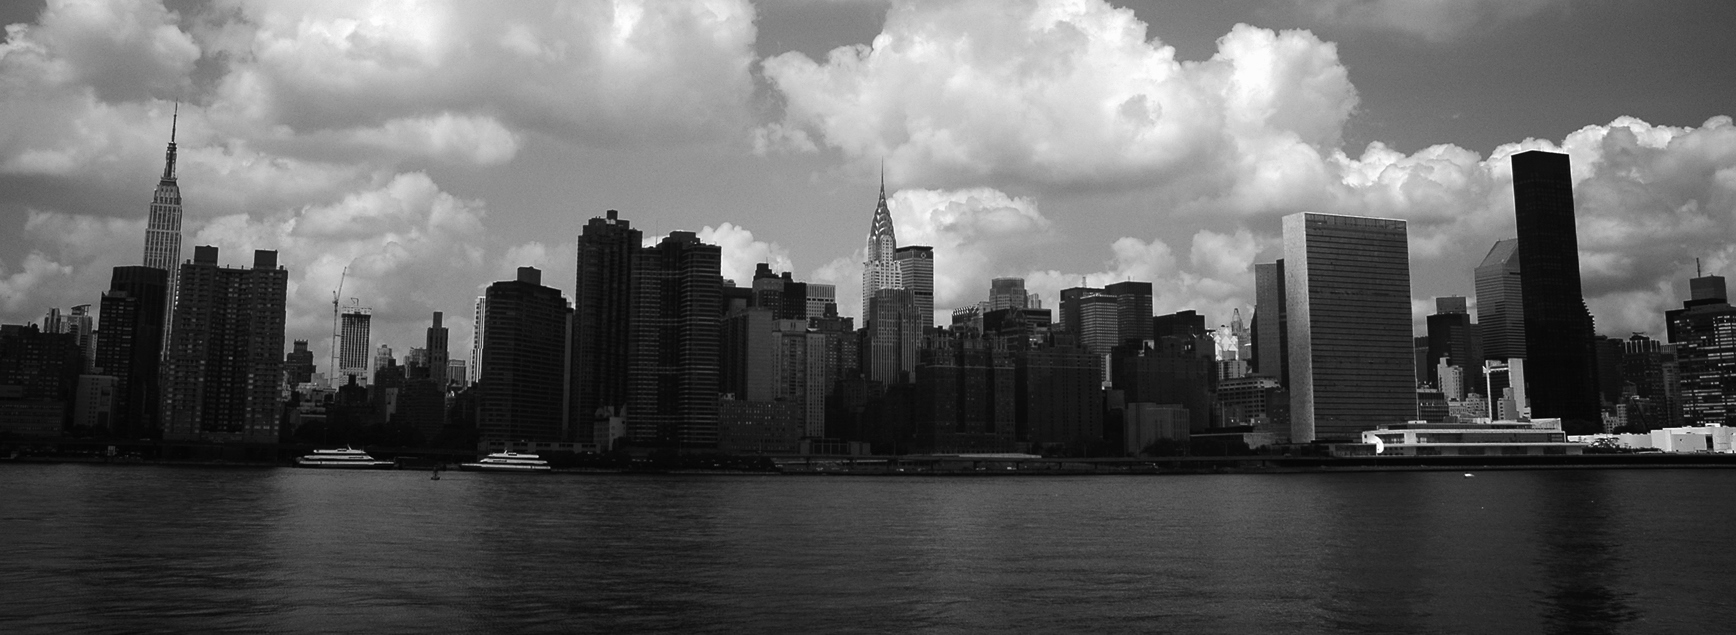 new-york-manhattan-gratte-ciel_SD1